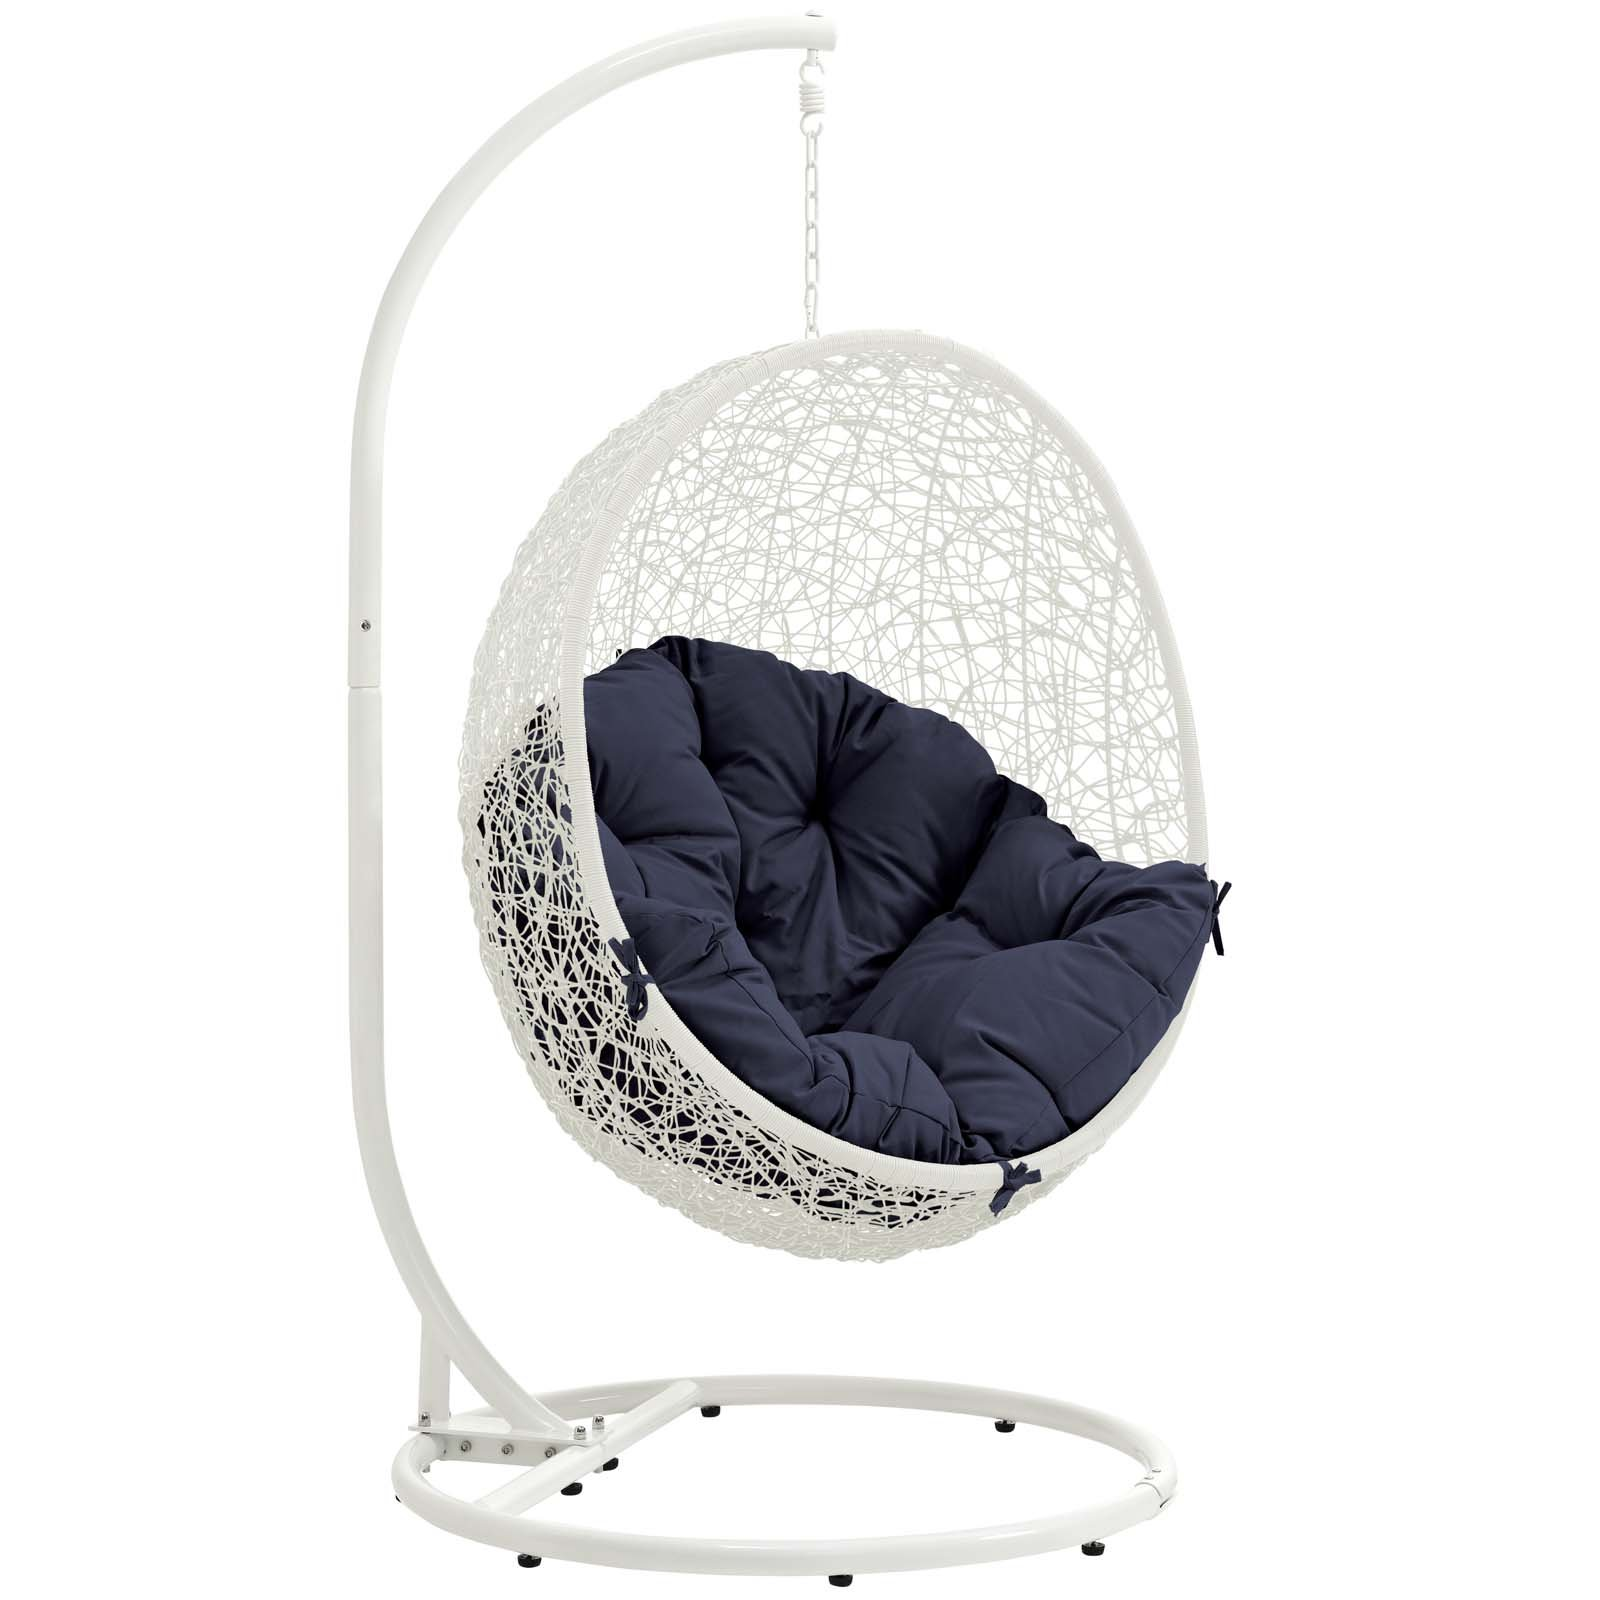 Modway Hide Wicker Rattan Outdoor Patio Porch Lounge Egg Swing Chair Set with Stand in White Navy